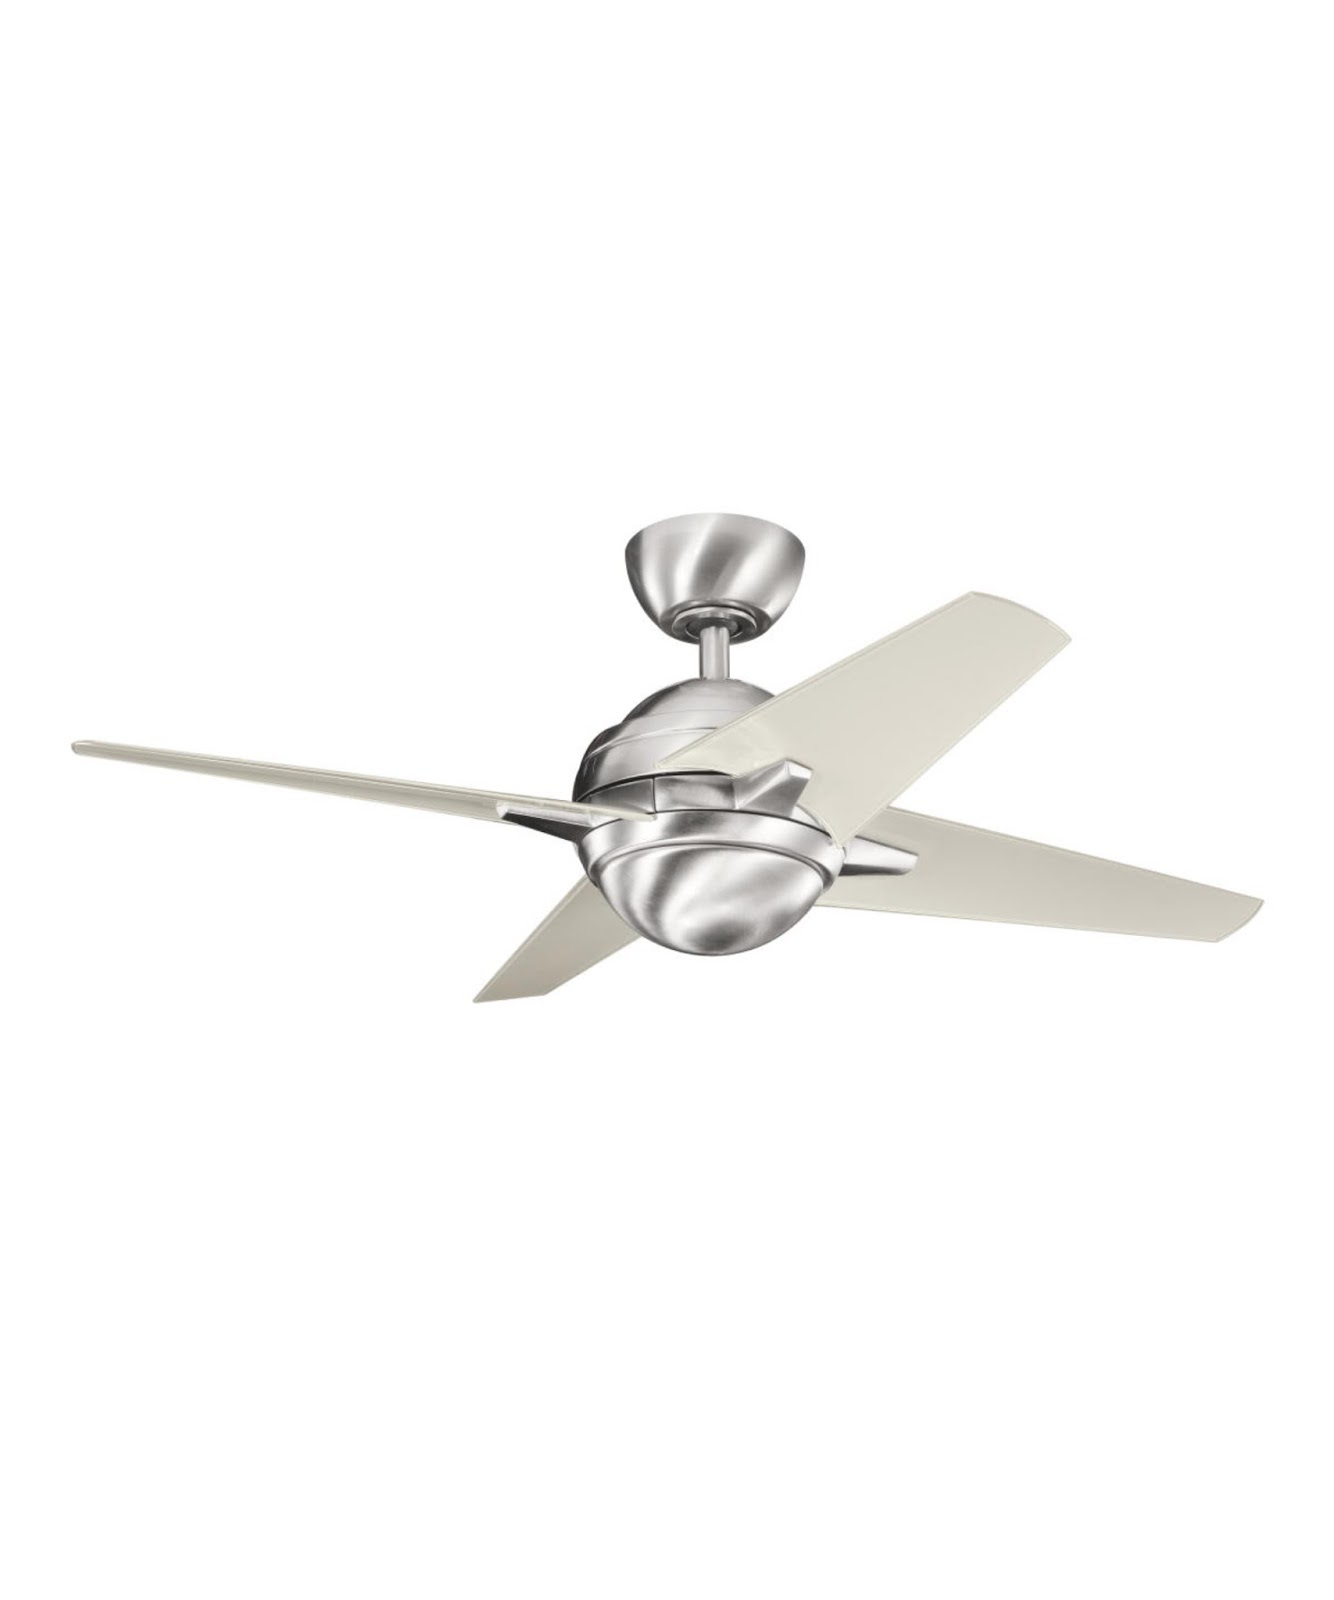 stainless steel outdoor ceiling fans photo - 8